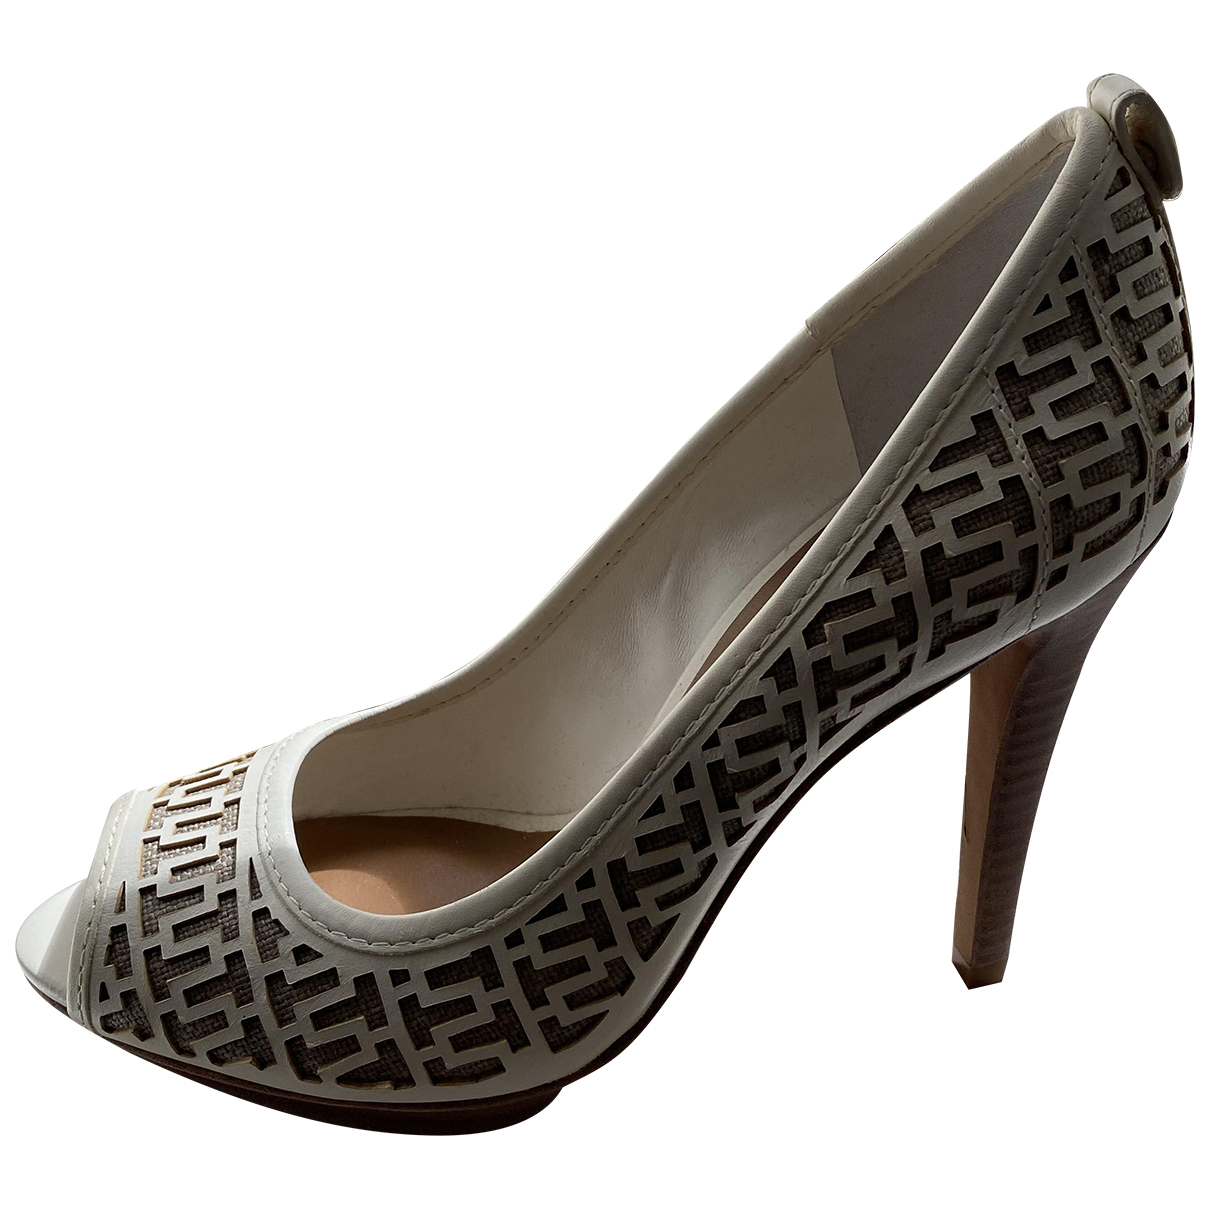 Tory Burch \N White Leather Heels for Women 8.5 US